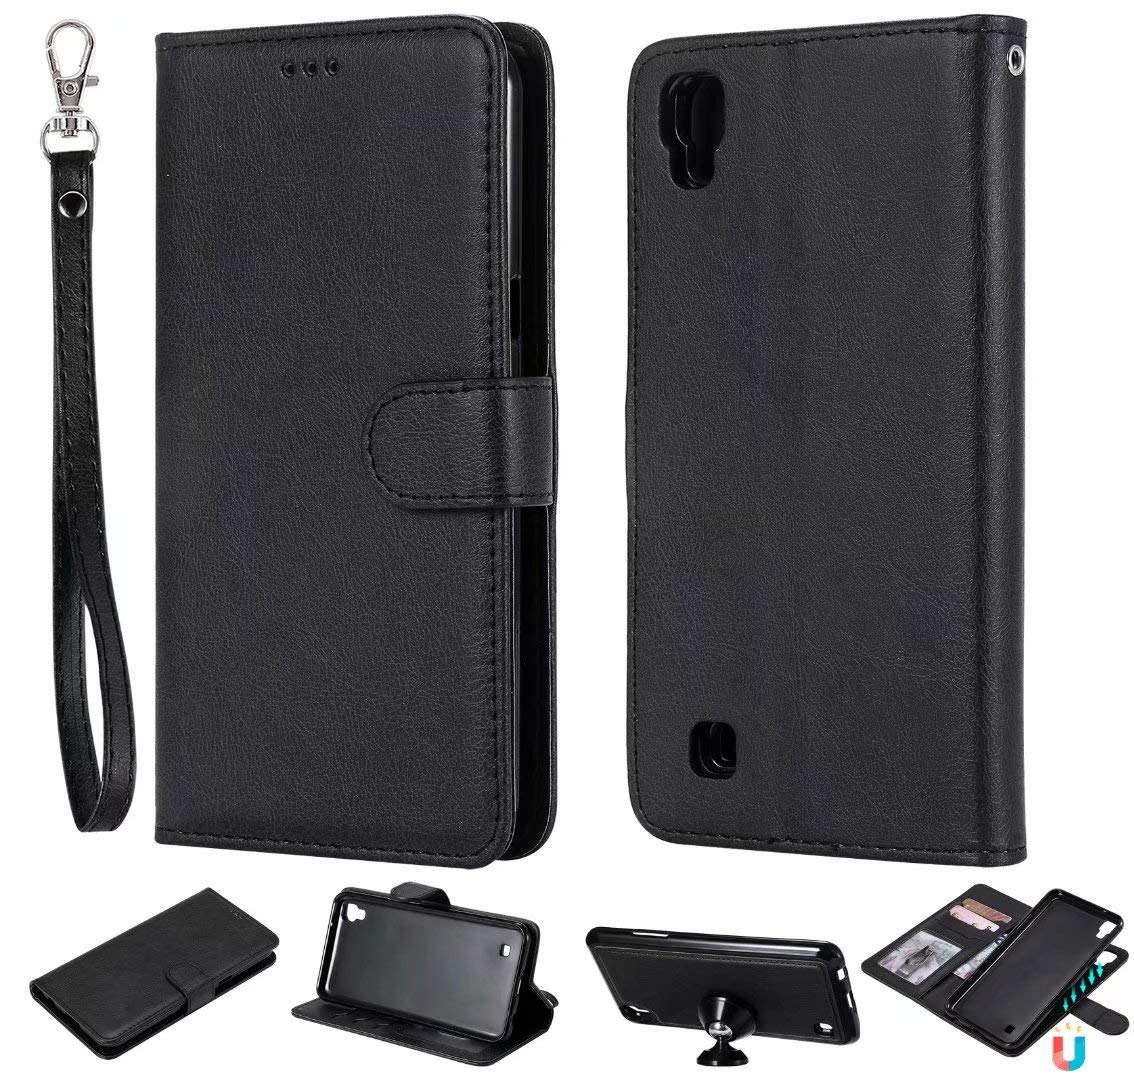 2 in 1 Wallet Case for LG Xpower,[Detachable][Fit Magnetic Car Moun] LG Xpower PU Leather Folio Flip Cover with Wrist Strap (Black)